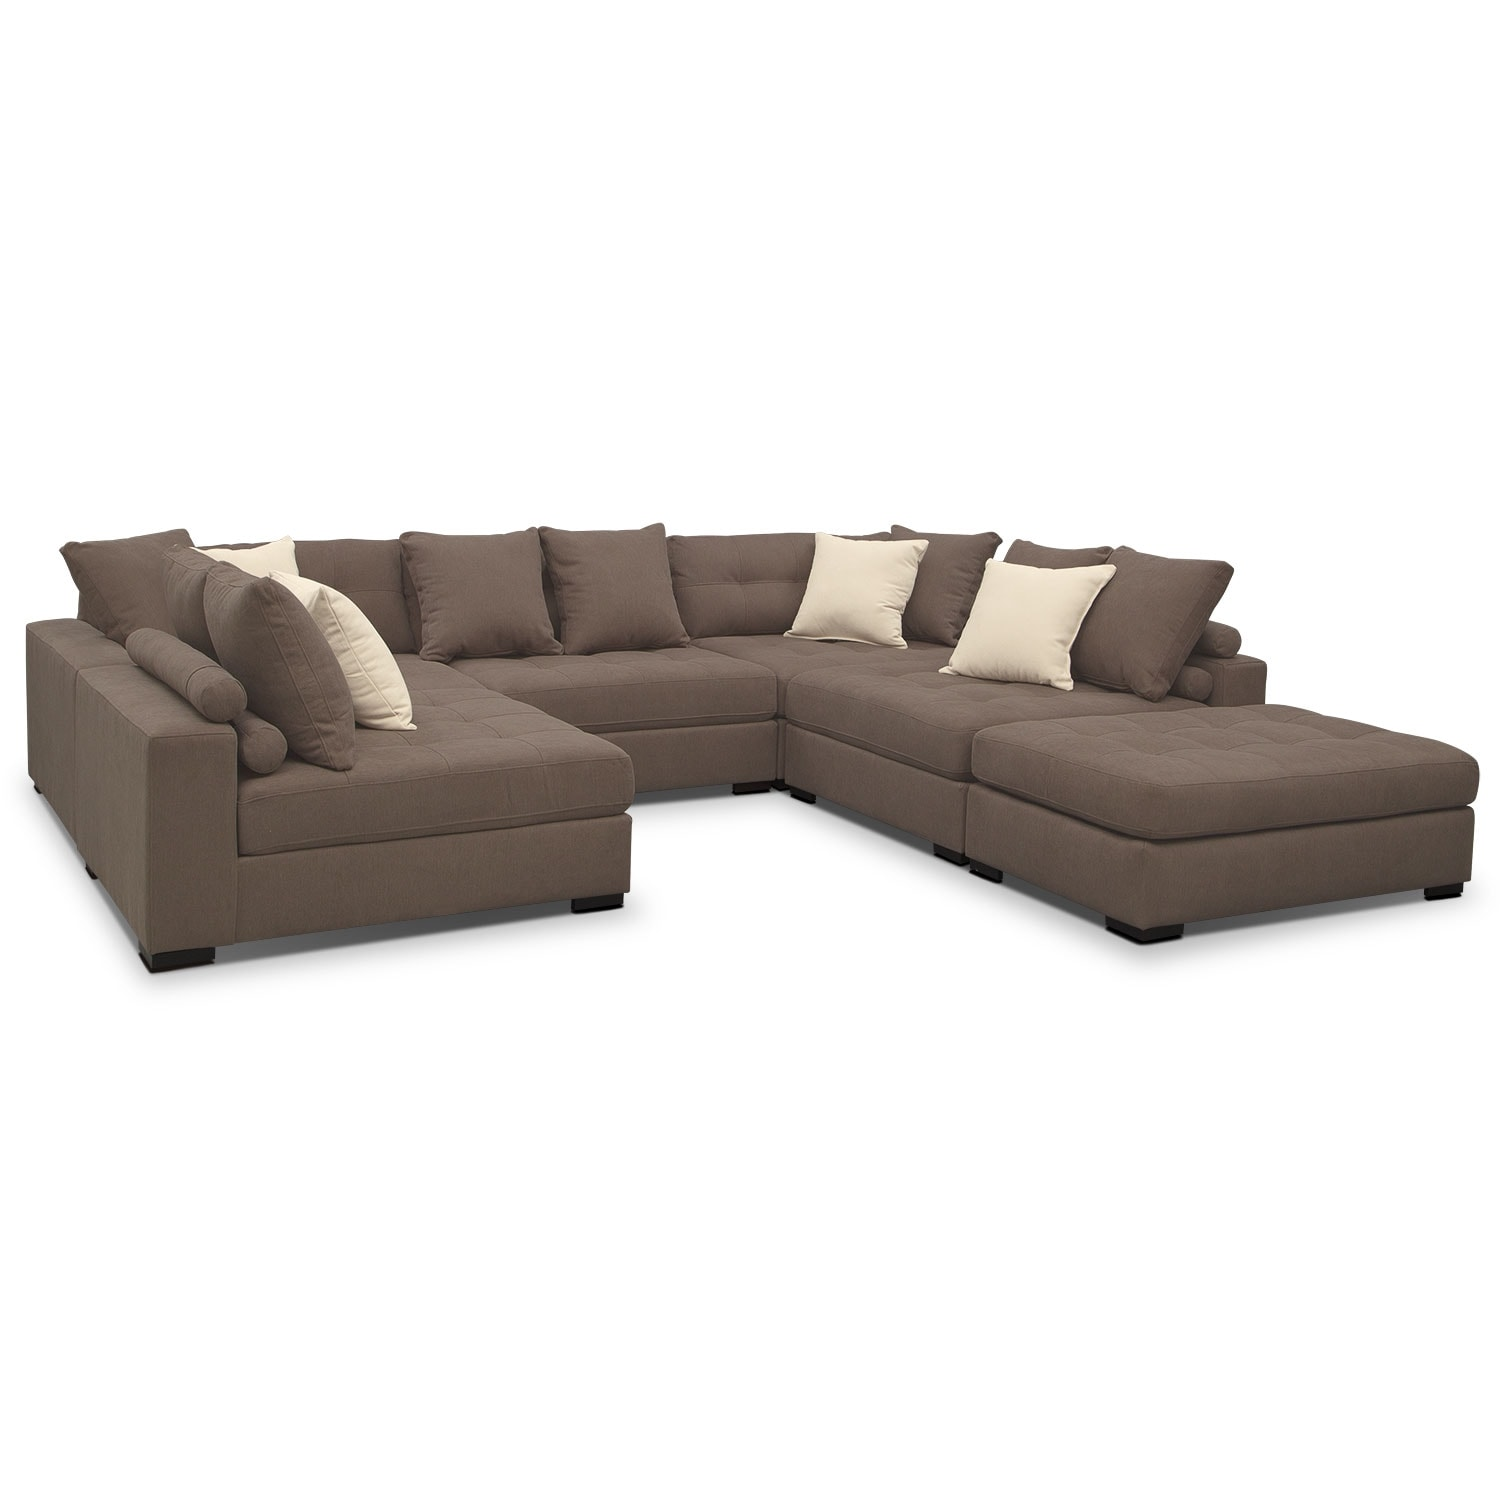 Venti Mocha 6 Pc. Sectional